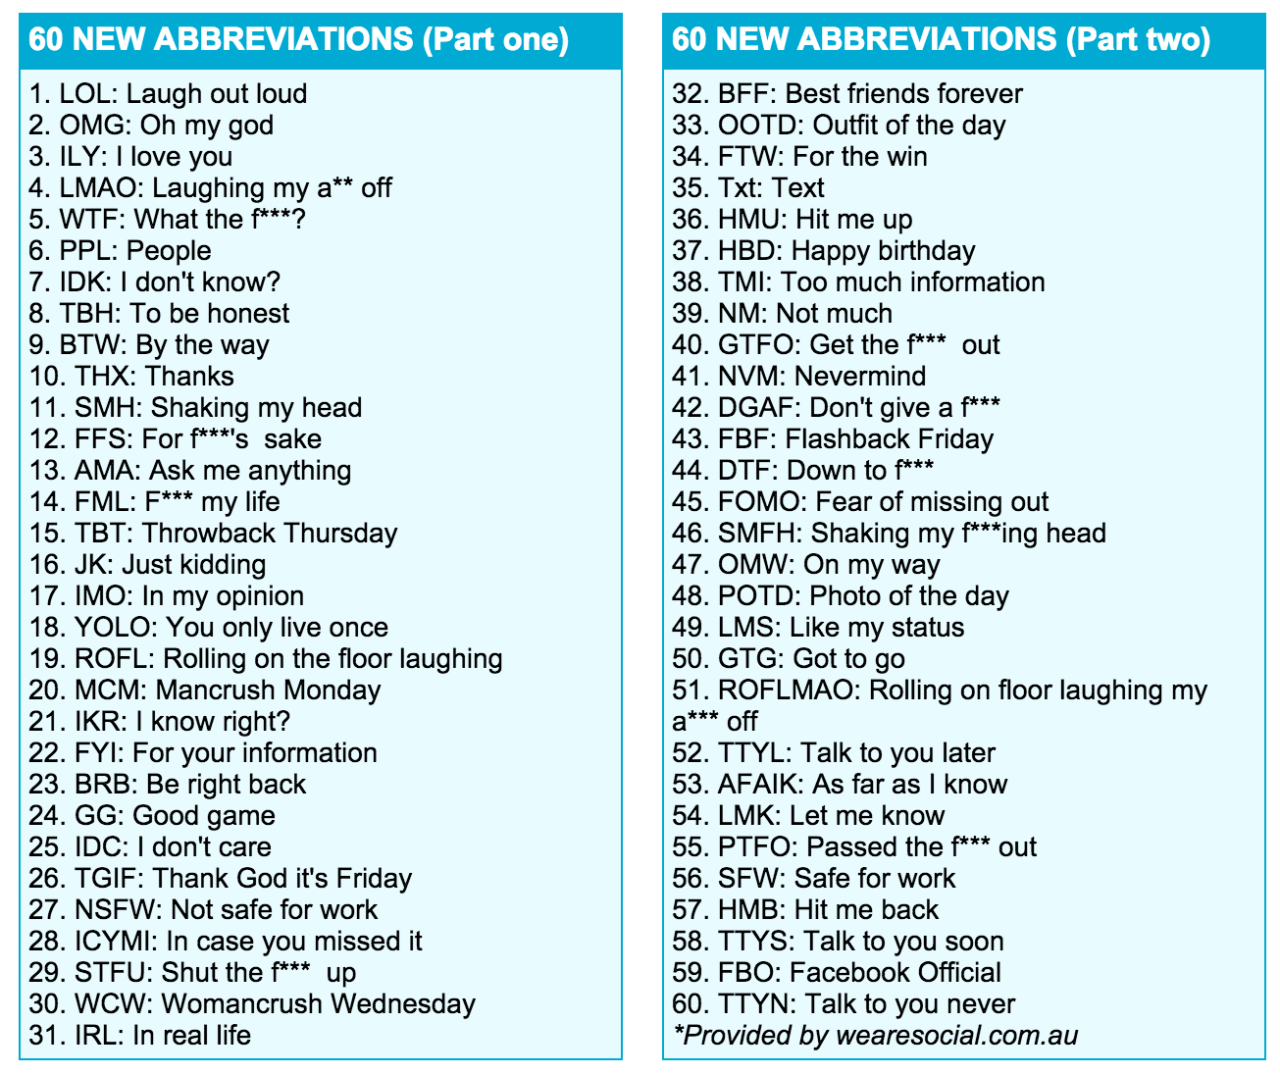 Amazing Abbreviations